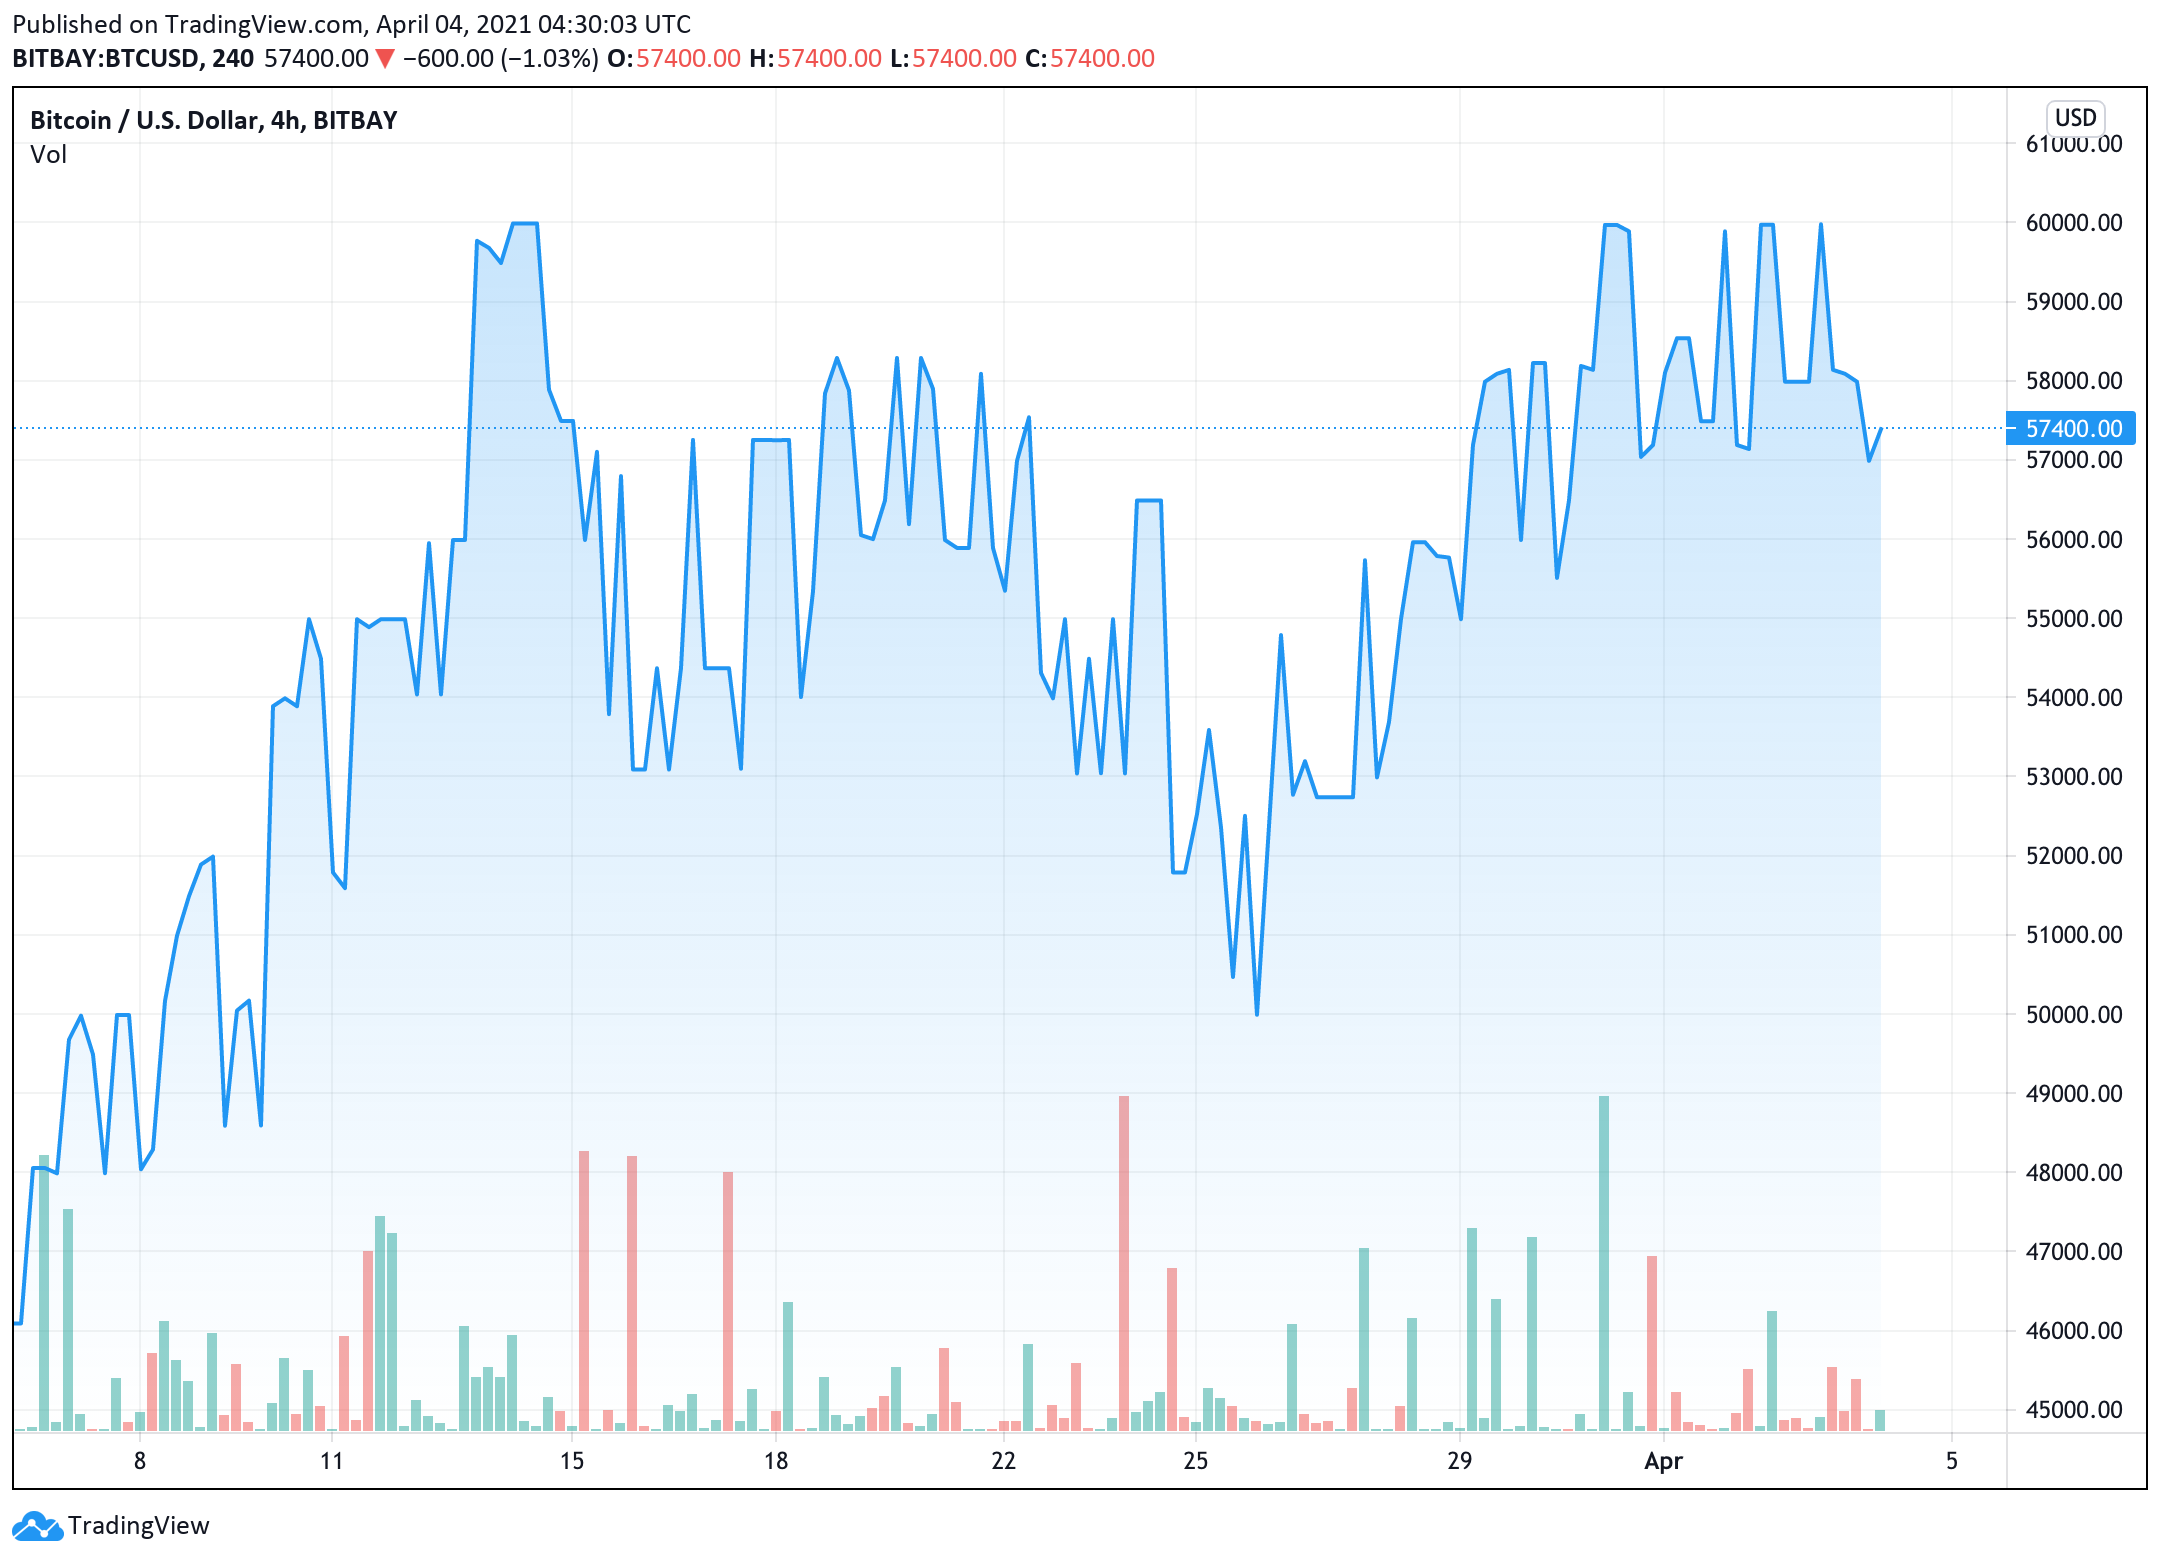 bitcoin-price-dropped-more-than-4-during-the-day-leading-to-many-other-cryptocurrencies-dropping-dramatically